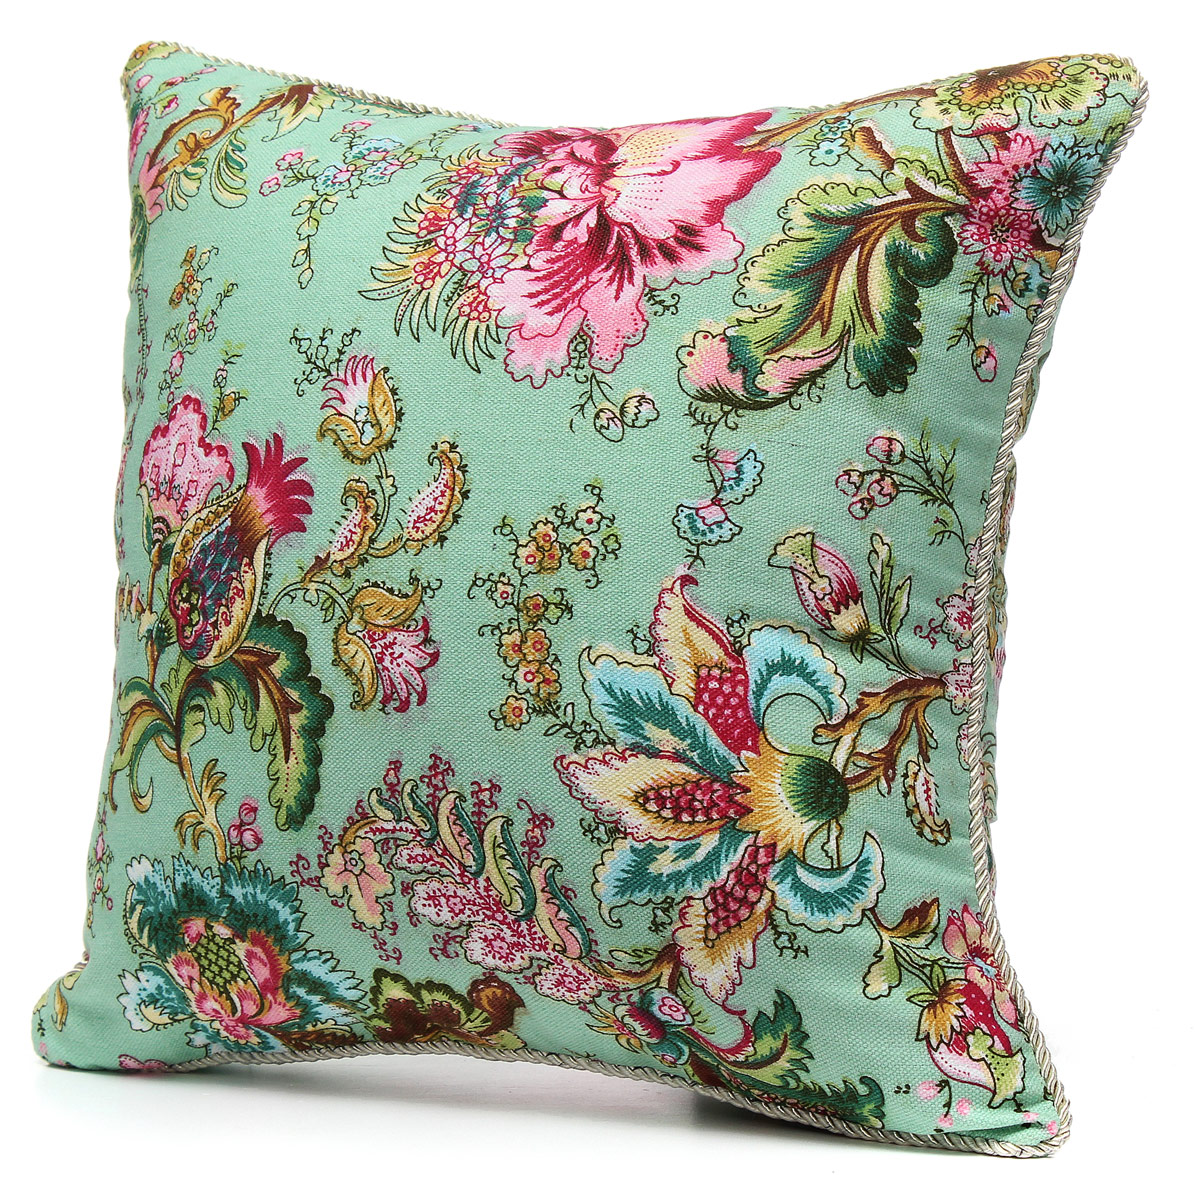 Vintage Decorative Pillow : Vintage Fashion Square Throw Pillow Cases Home Sofa Decorative Cushion Cover eBay